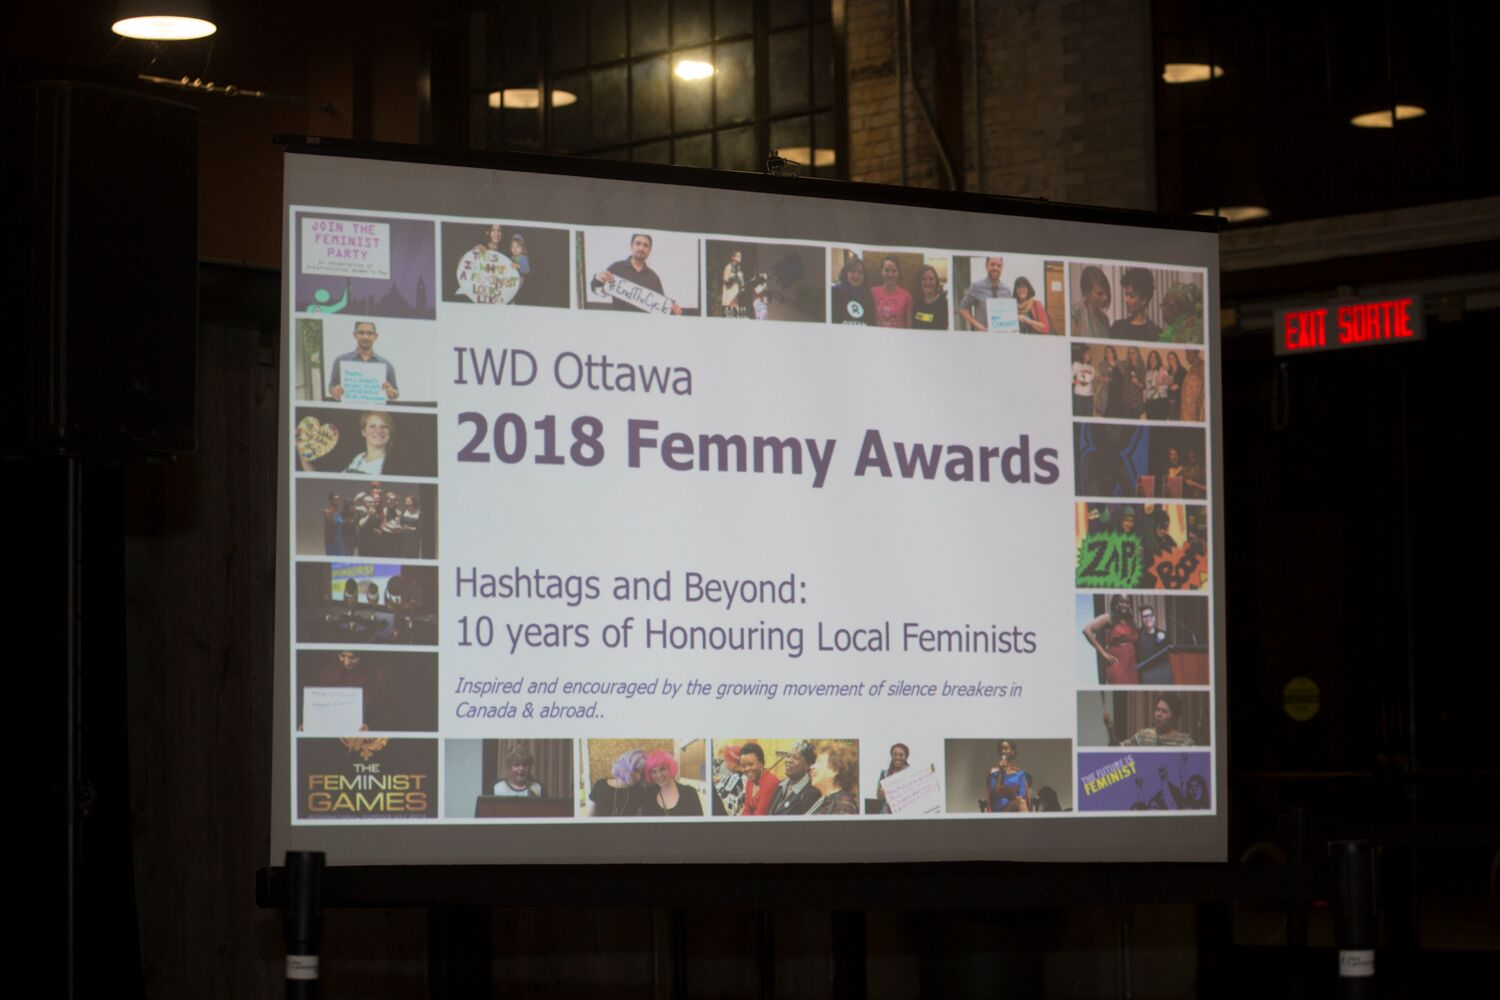 International Women's Day Ottawa 2018